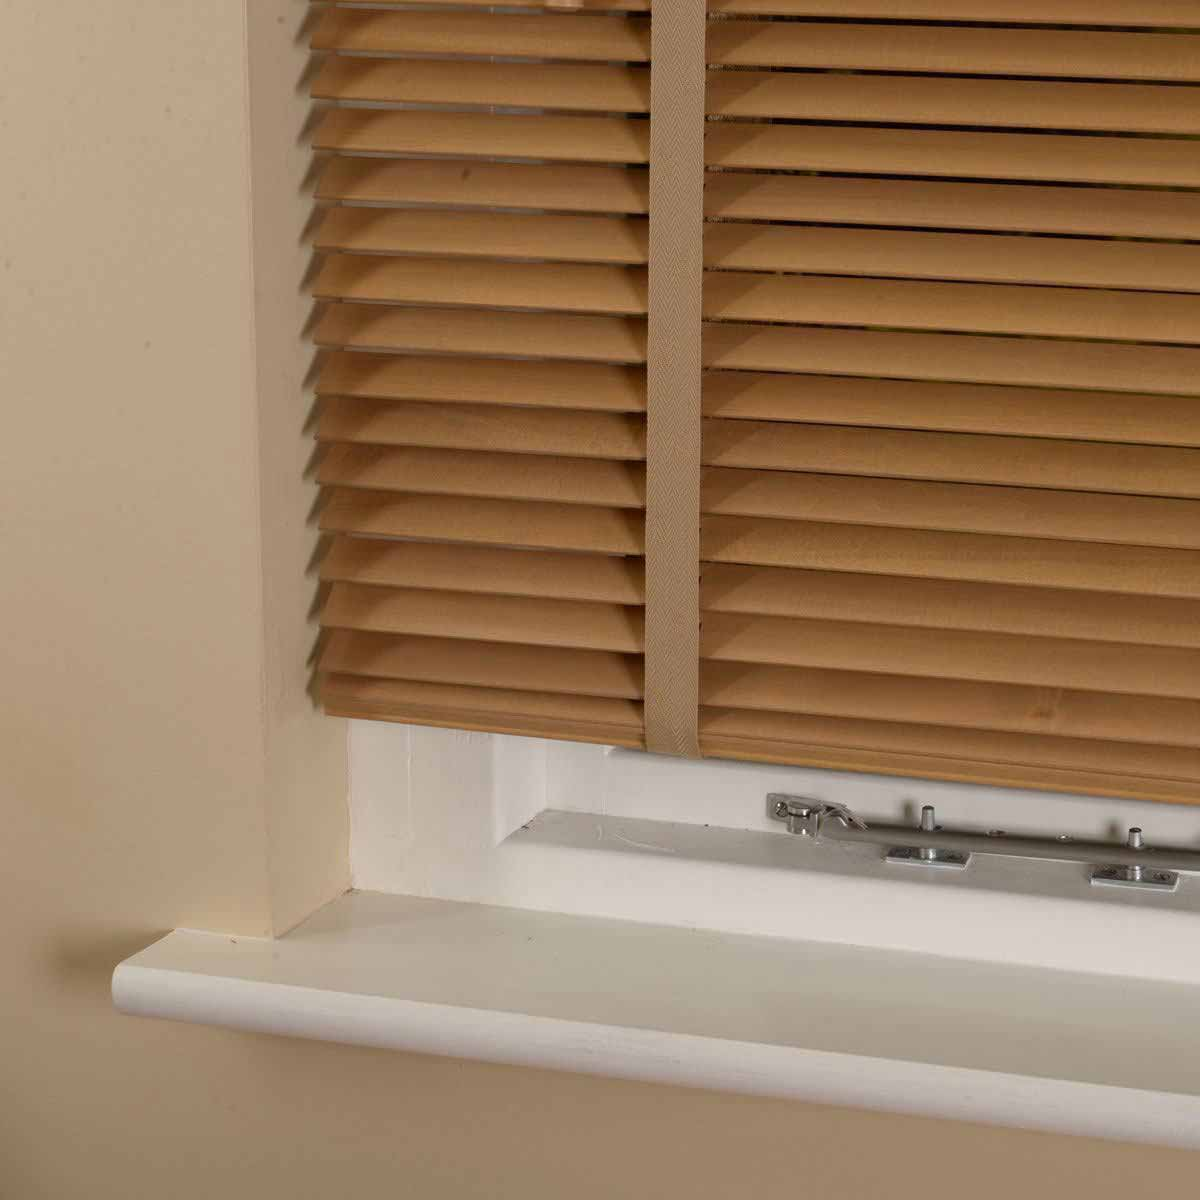 Stockists of Tawny 25mm Elementi Wood Venetian Blind With Tapes